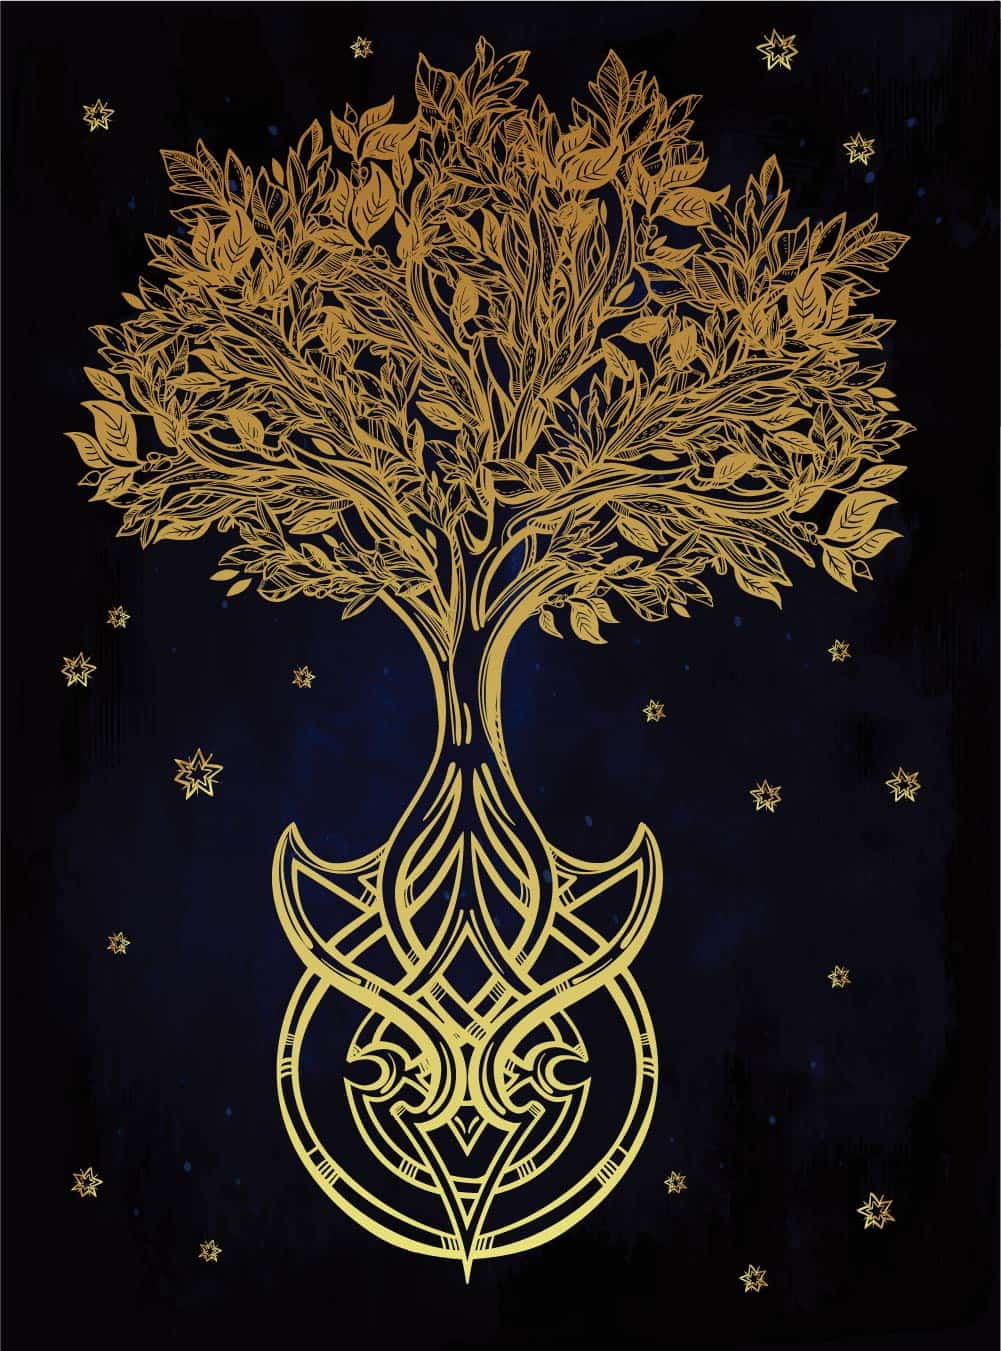 What Is The Meaning Of The Celtic Tree Of Life Tattoo Today